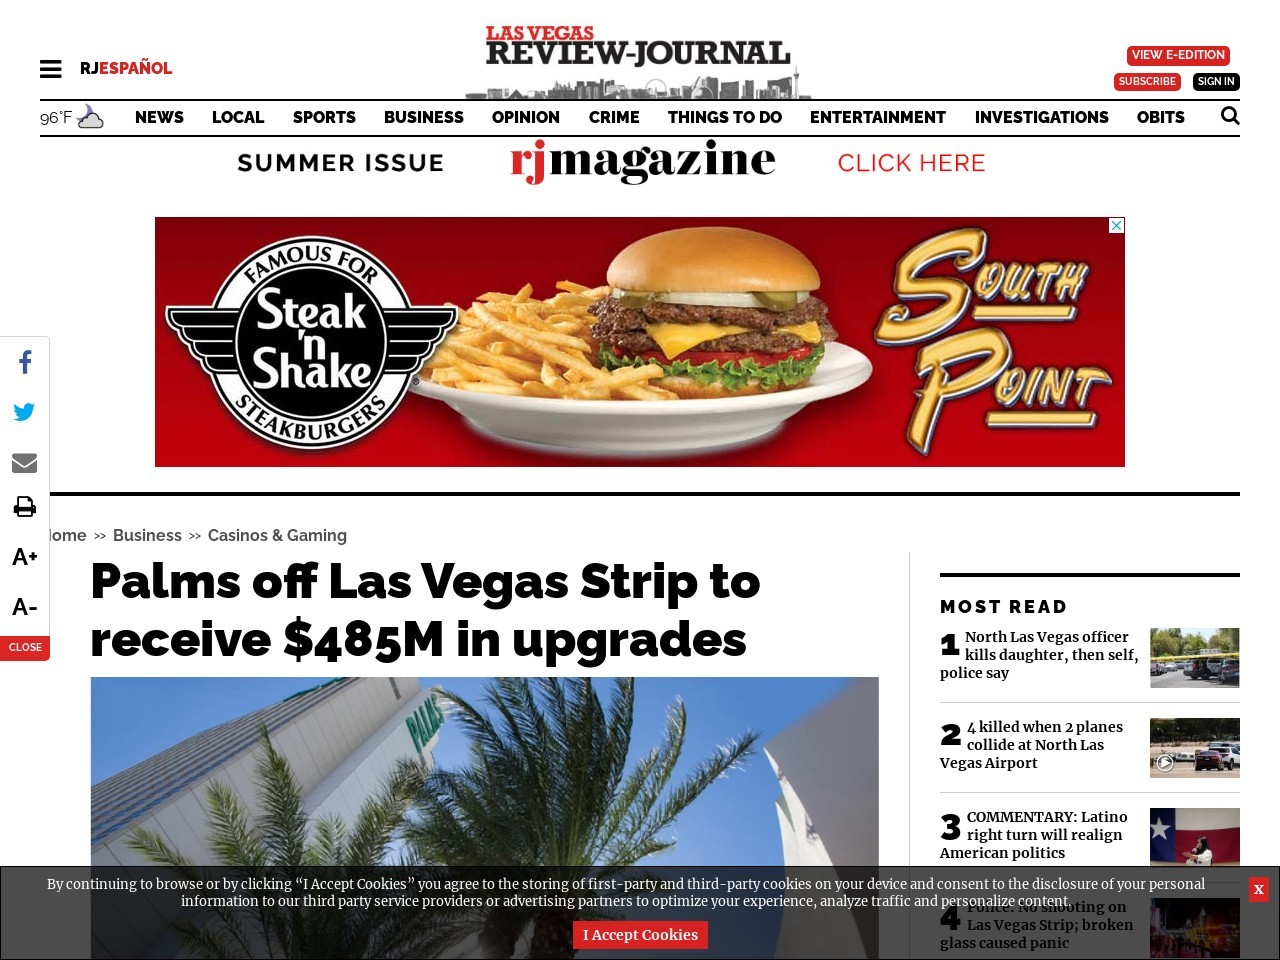 Palms off Las Vegas Strip to receive $485M in upgrades